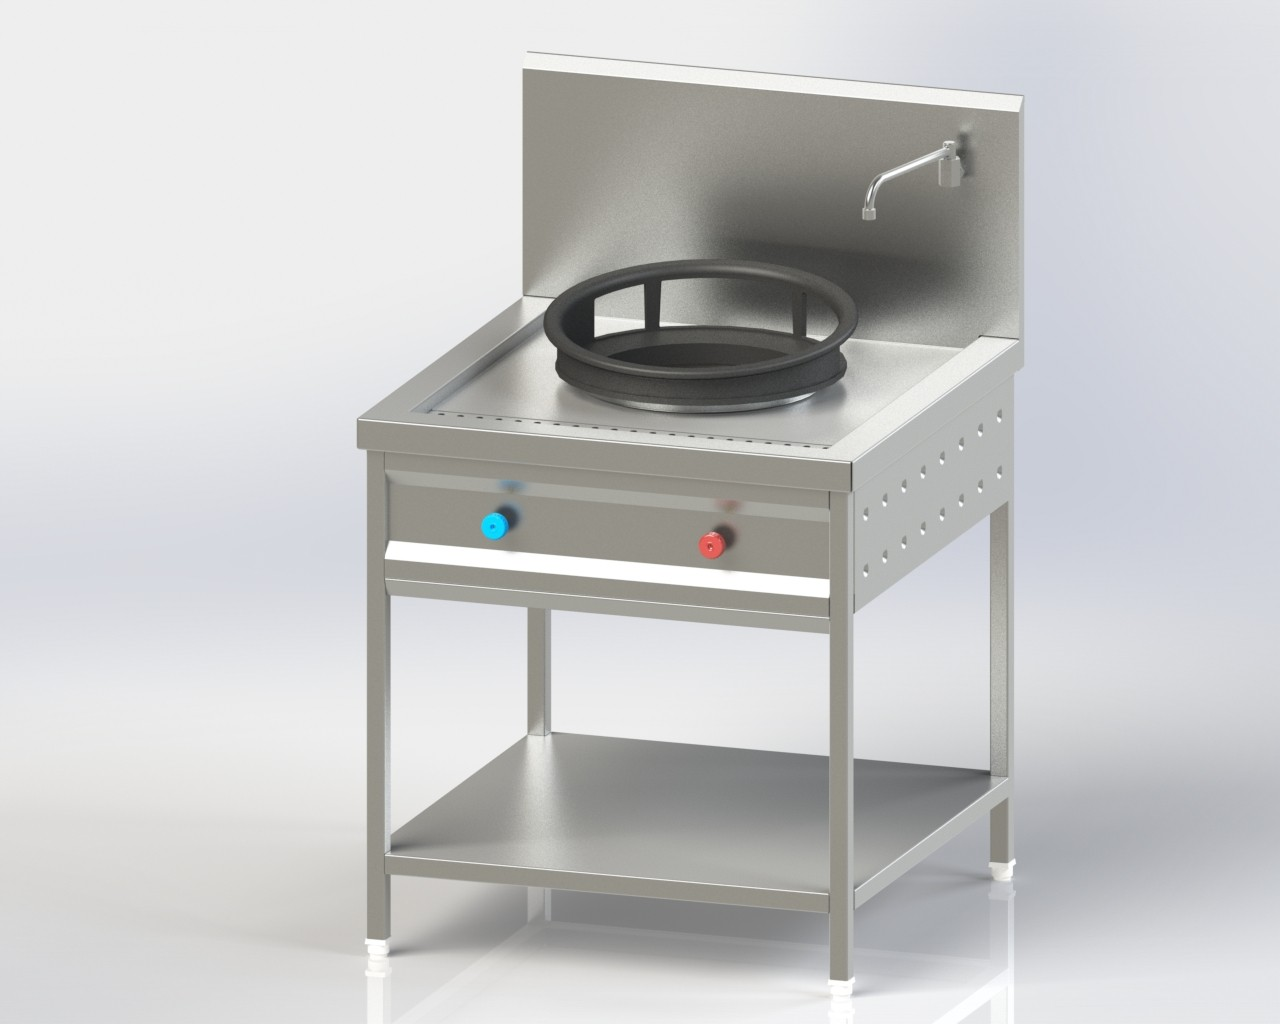 Single Burner Chineses Cooking Range